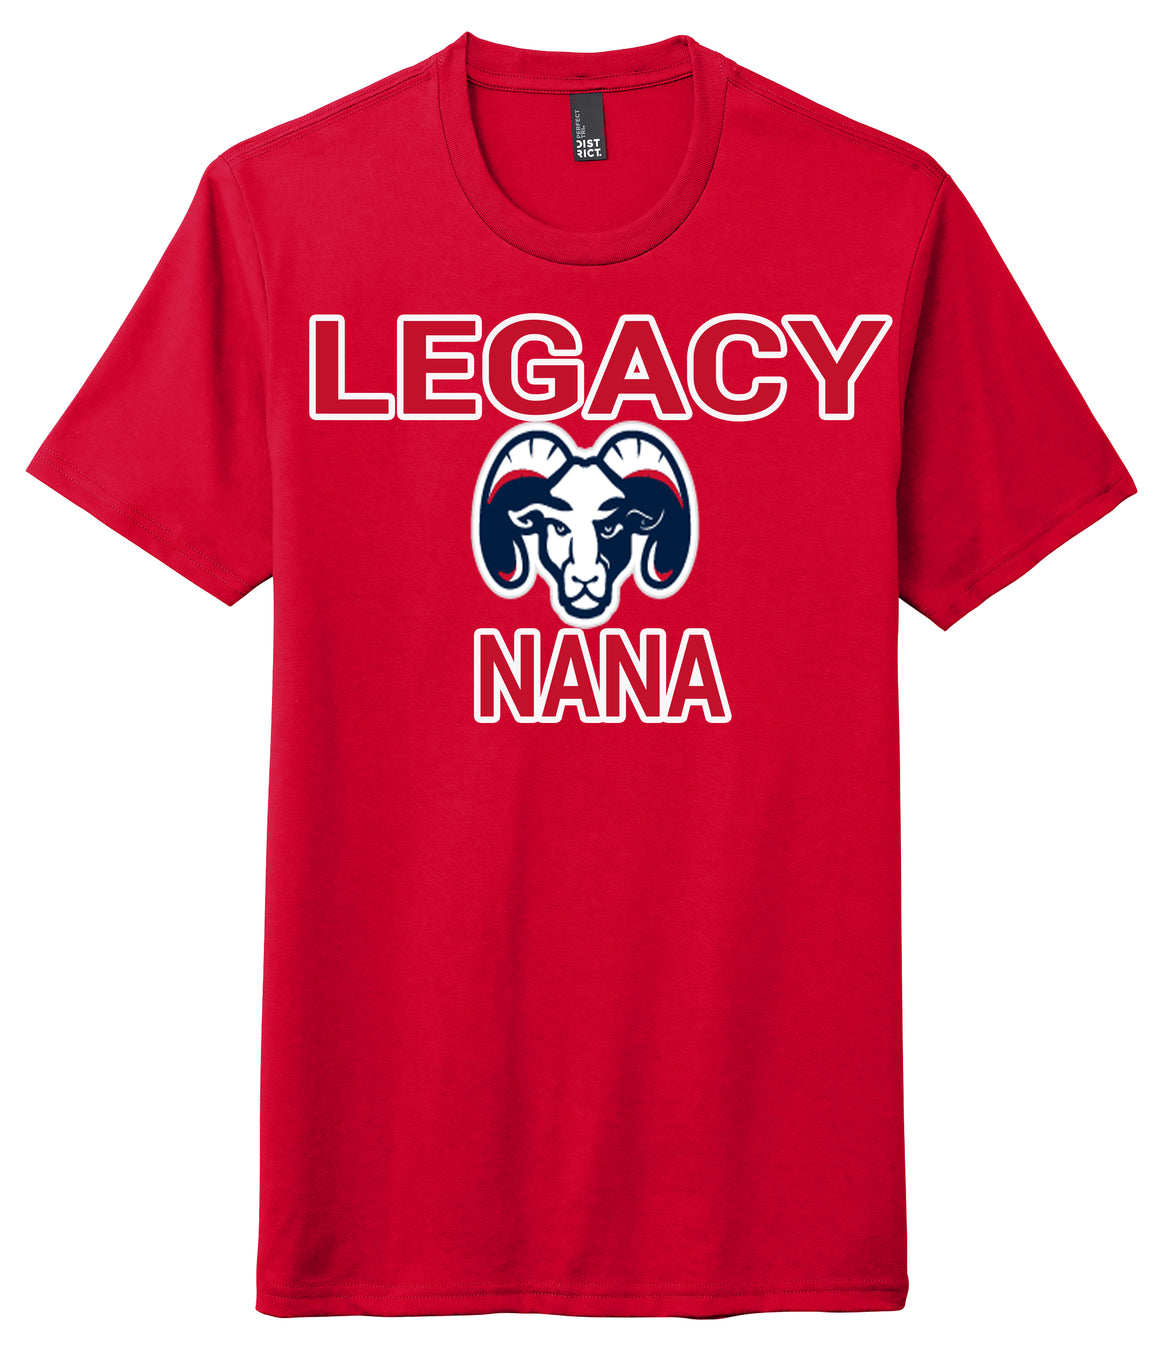 Legacy Traditional School East Mesa - Nana Shirt